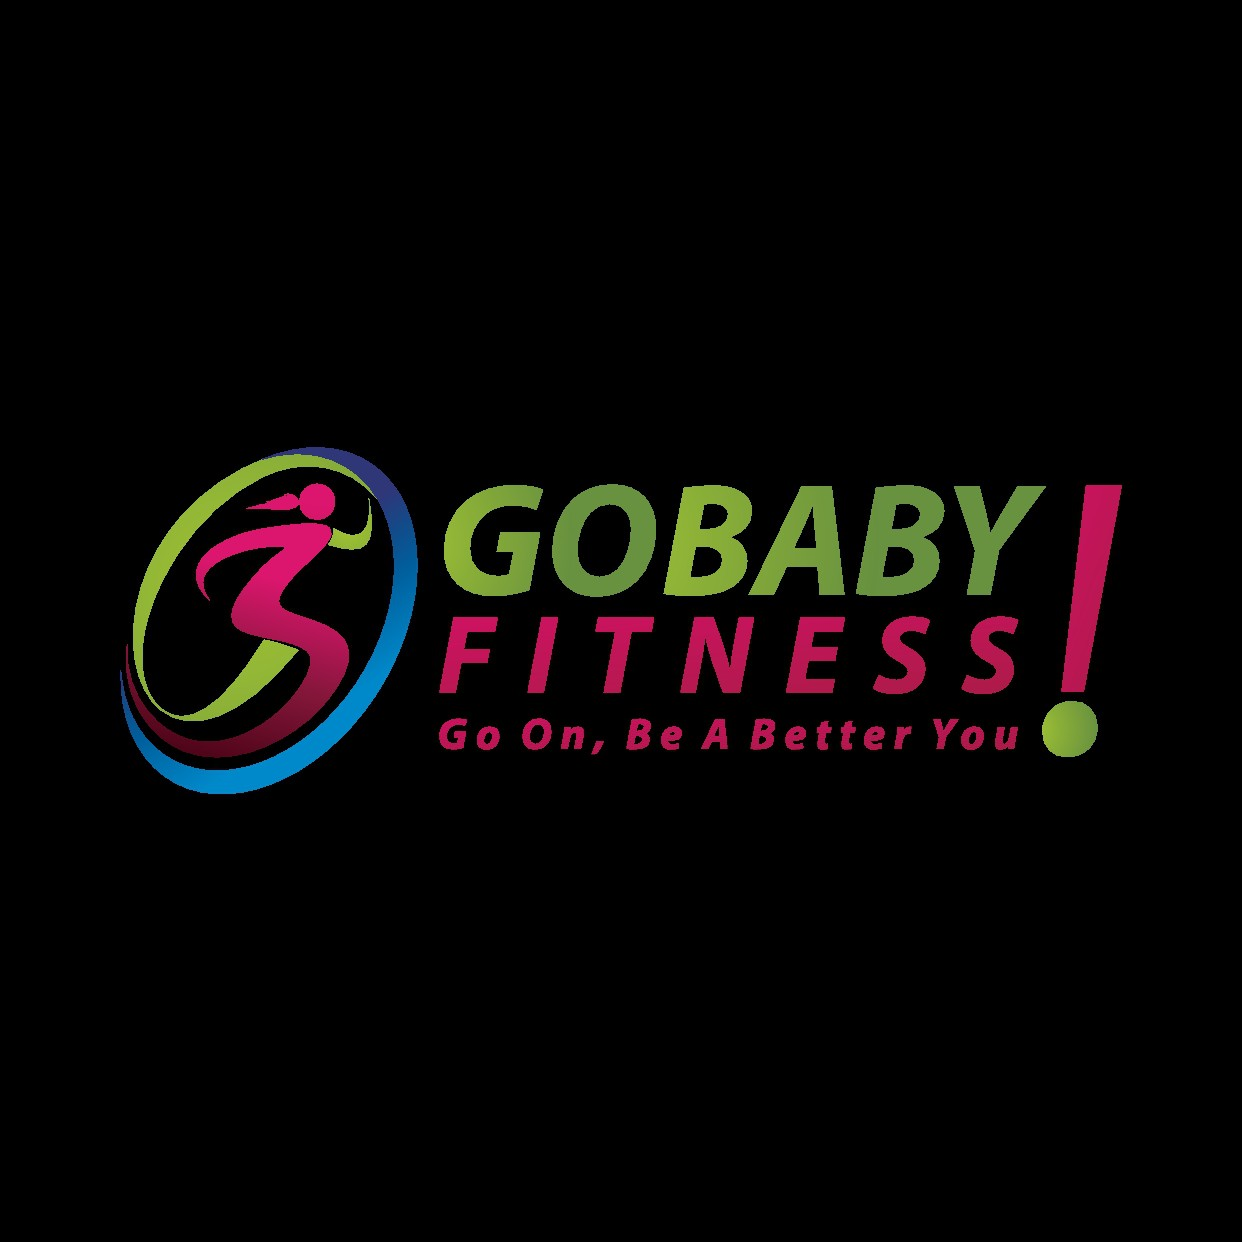 GOBABY Fitness Logo using an image you've already created